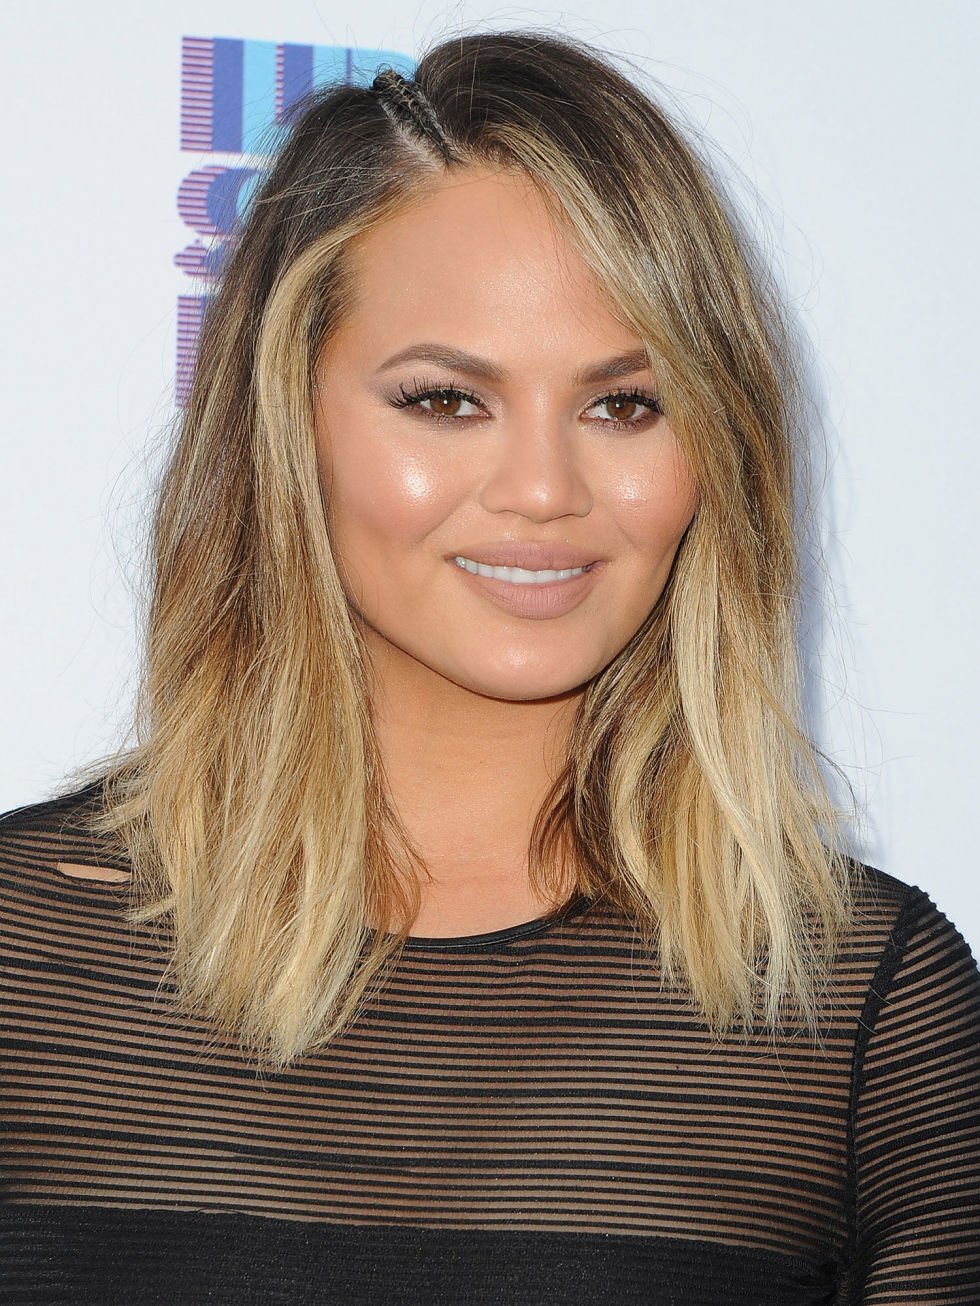 best hairstyles for oval faces - 10 flattering haircuts for long